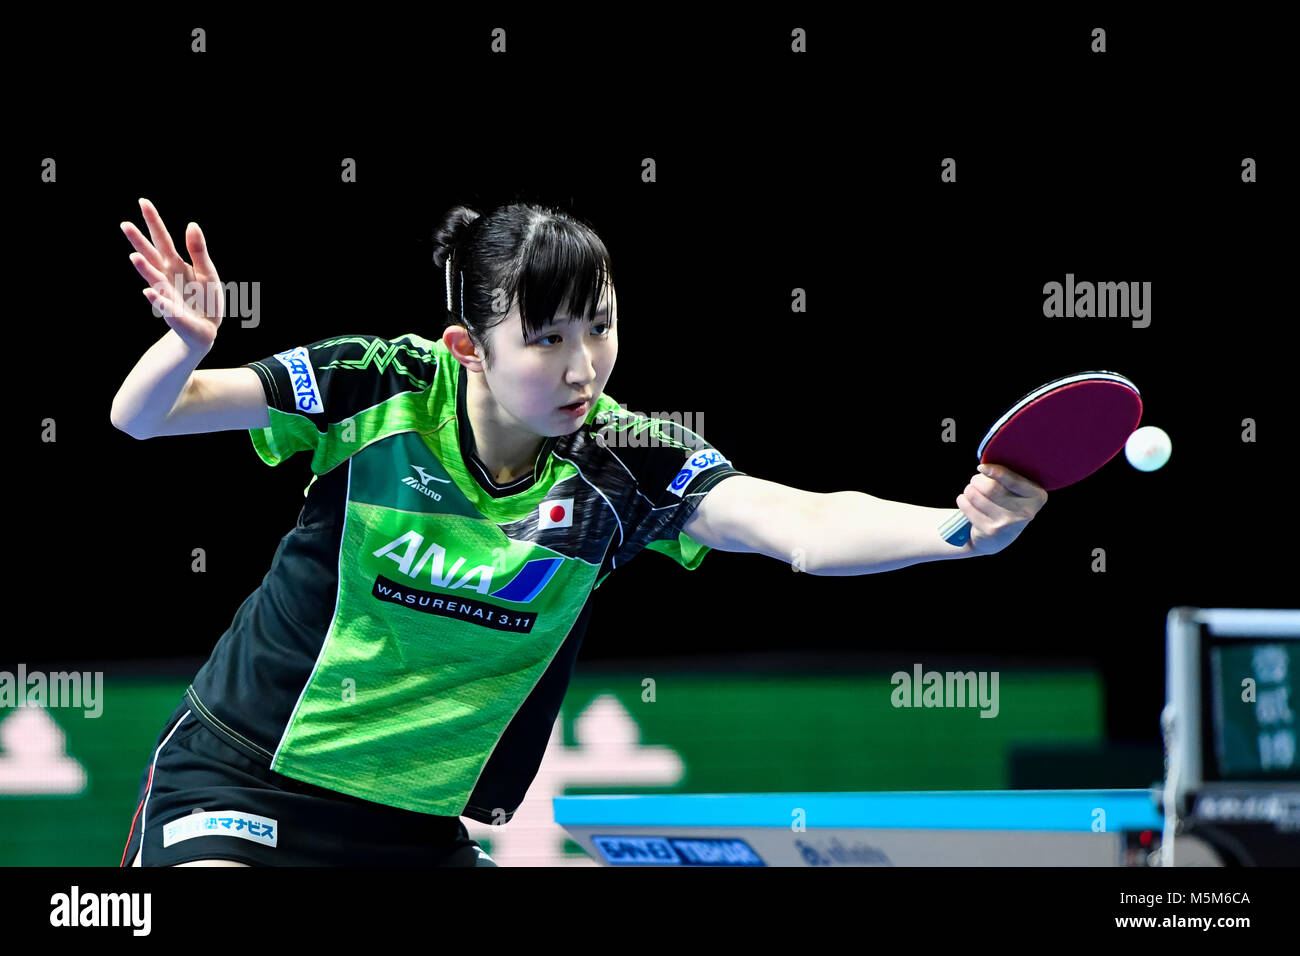 London, UK, 24 Feb 2018. during International Table Tennis Federation Team World Cup match between   at Copper Box - Stock Image